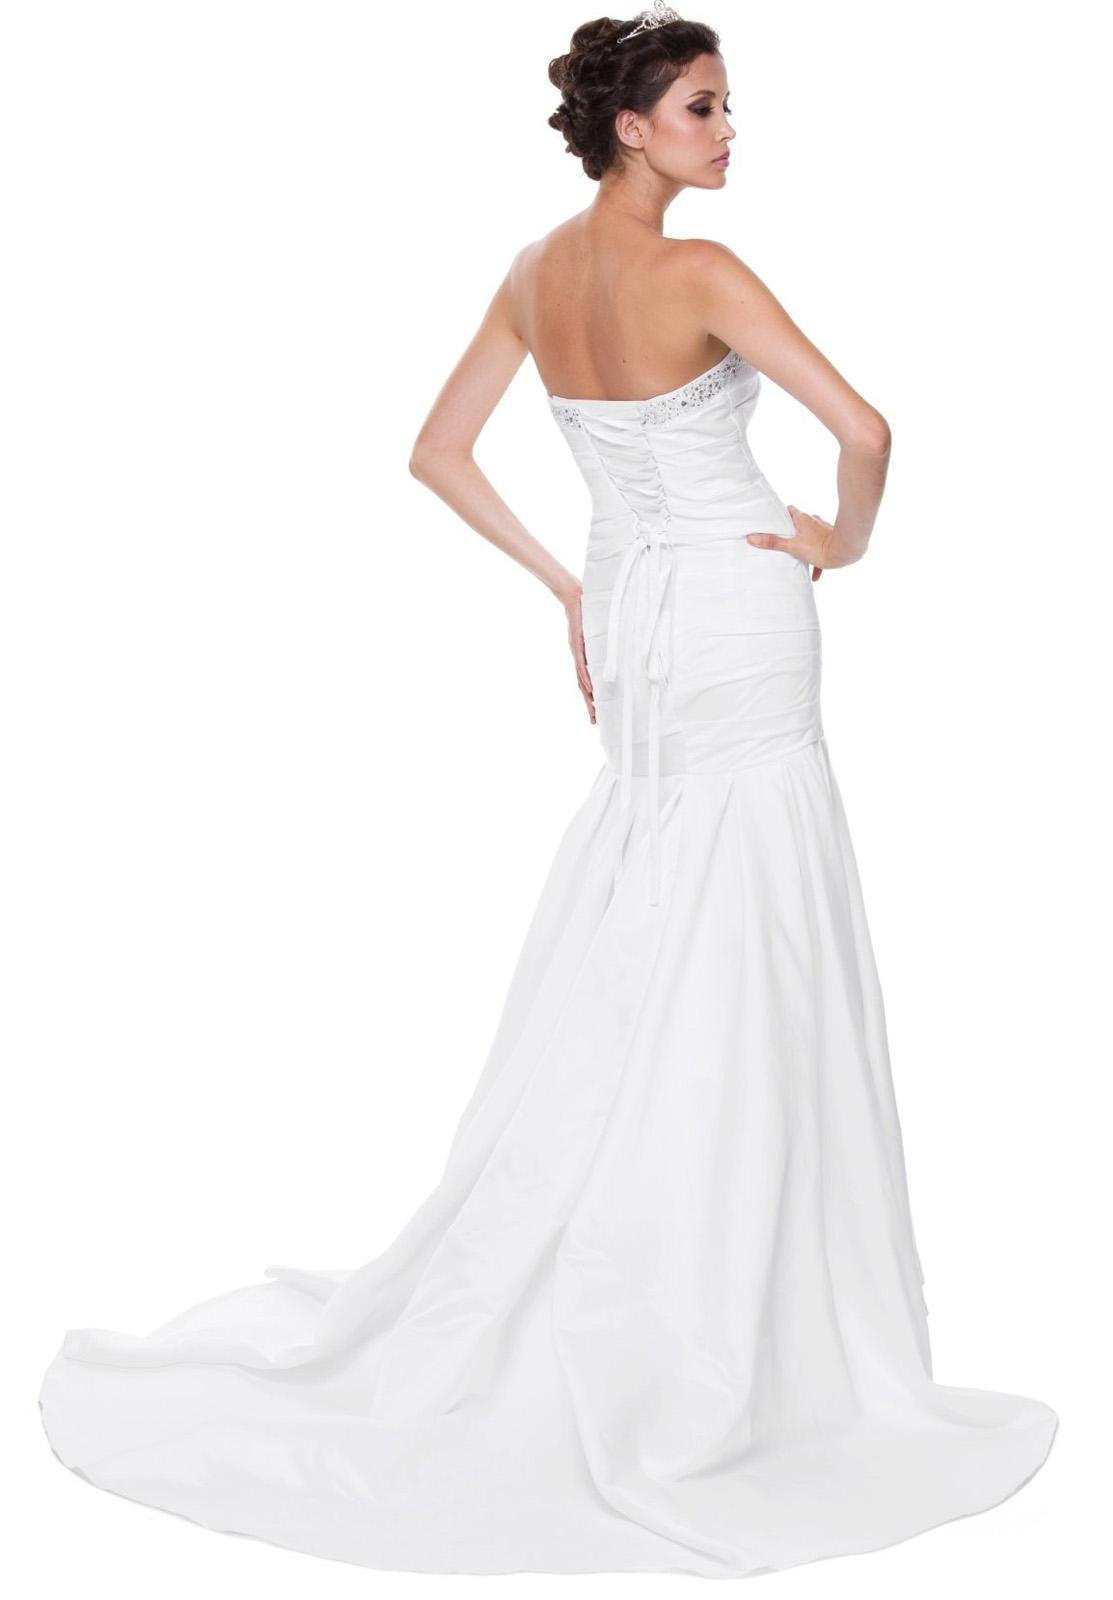 White Mermaid Wedding Gown Satin Lace Up Back Strapless Train Bow ...